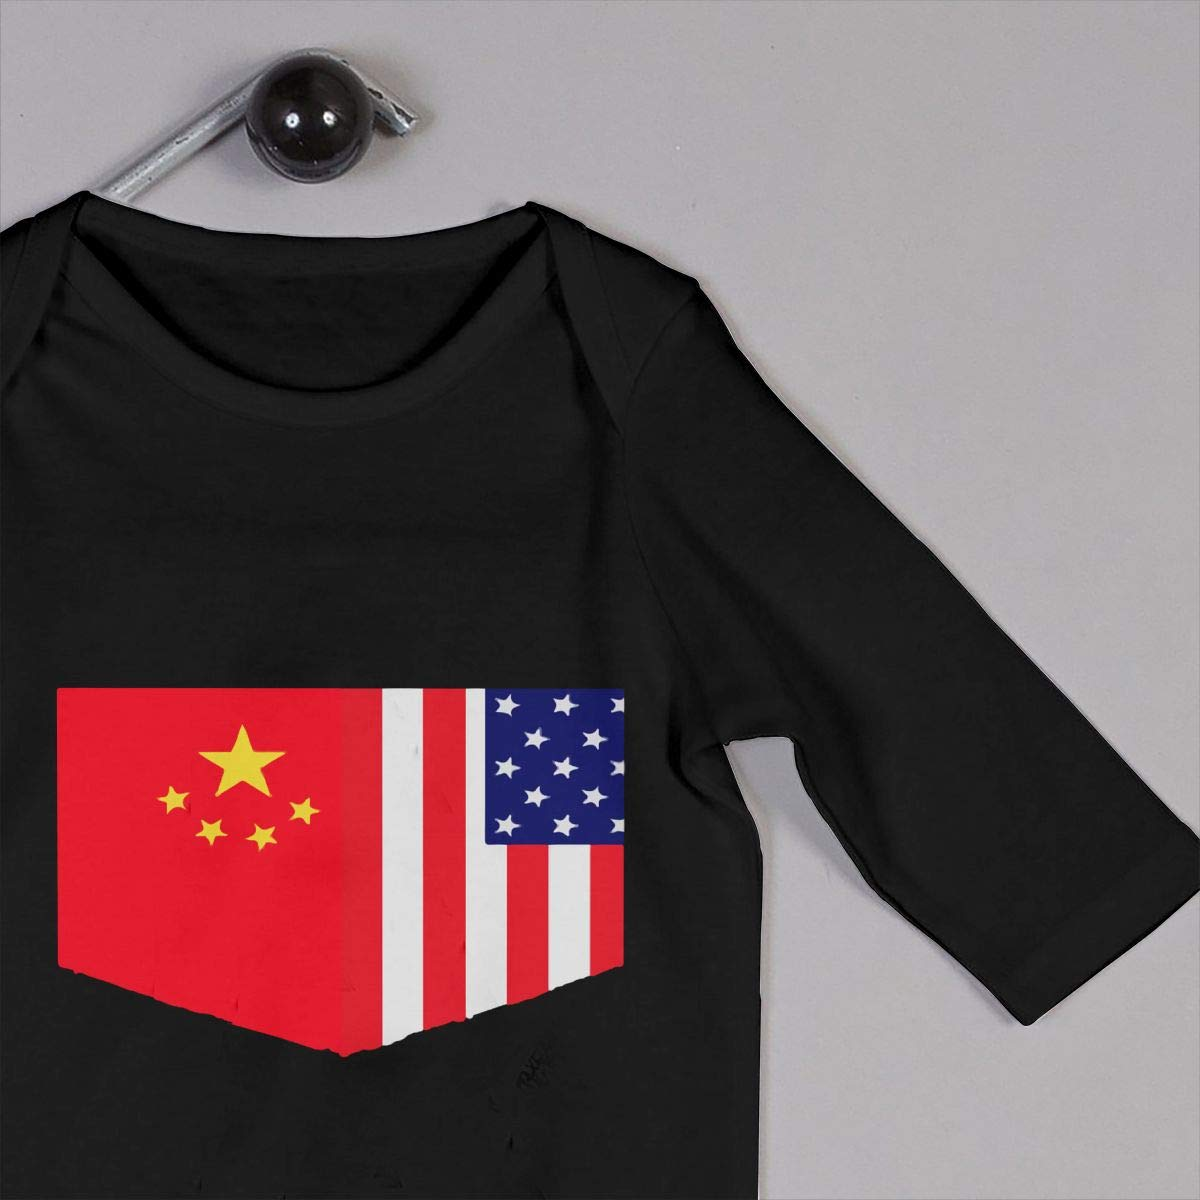 Db84UR@5p Infant Baby Girls Boys Long Sleeve Jumpsuit Comfortable Chinese Flag and American Flag Cotton Sleepwear